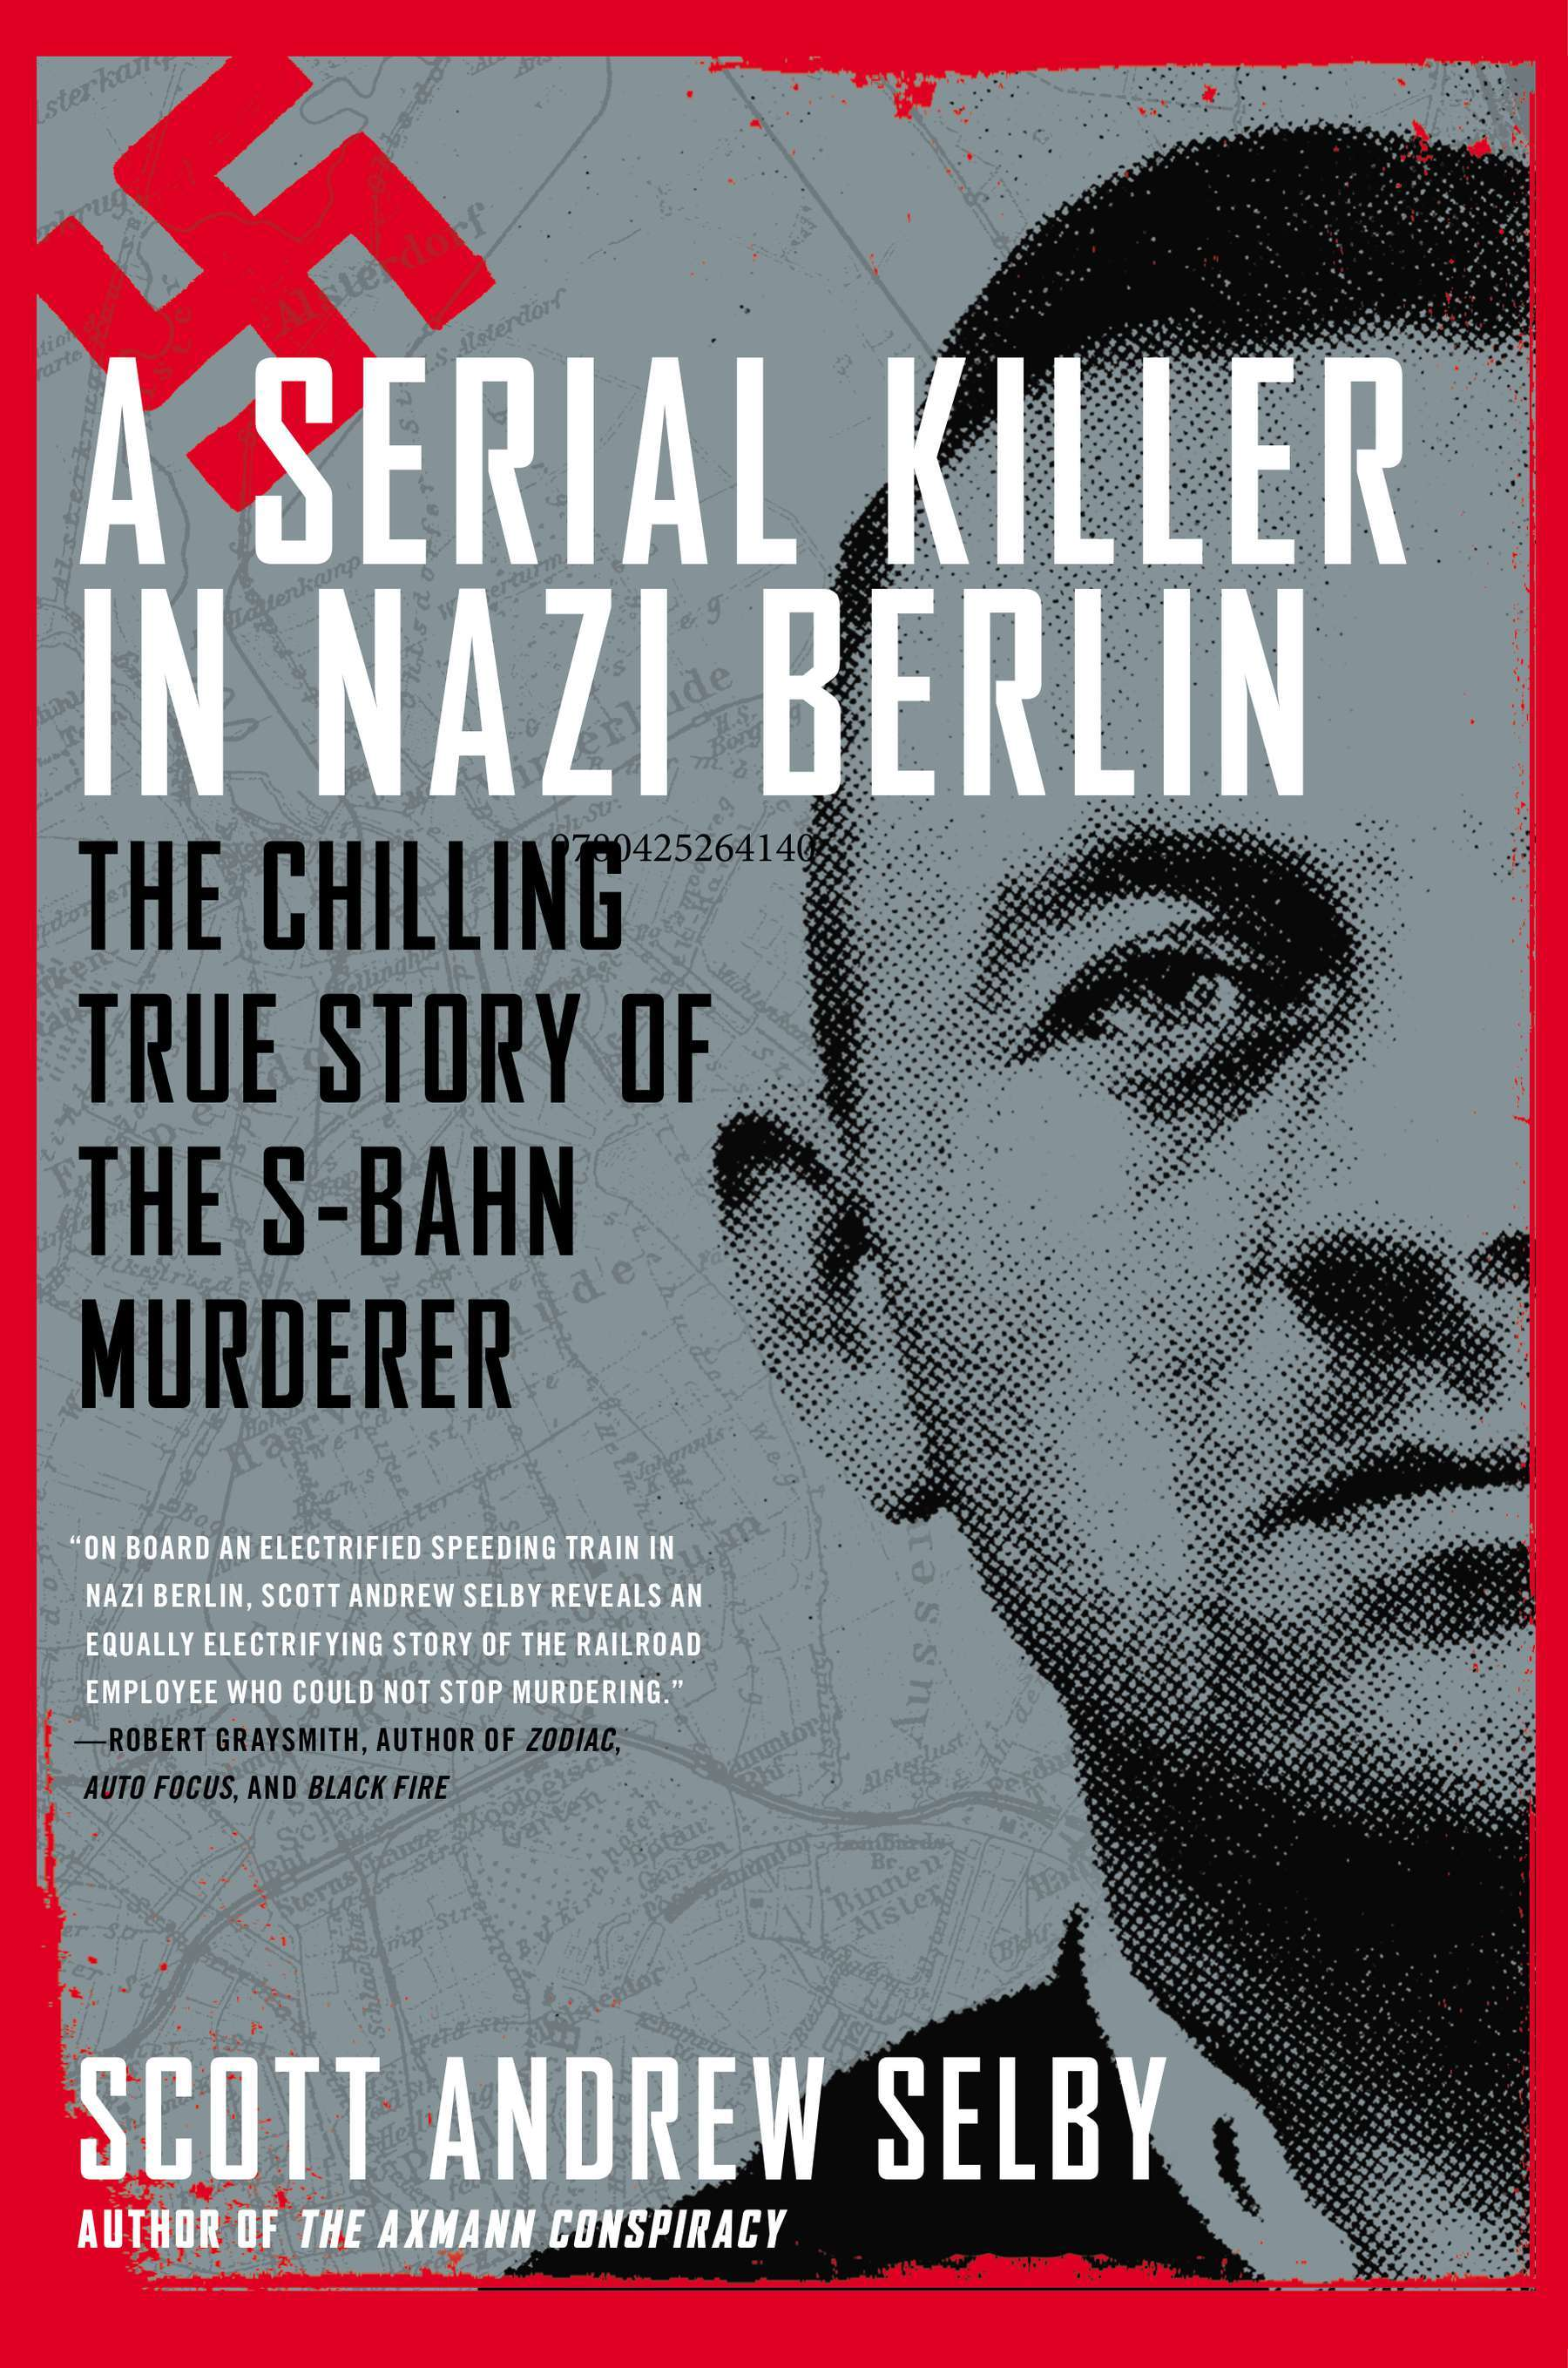 Um Serial Killer na Berlim Nazista - A Assustadora História do Assassino do S-Bahn